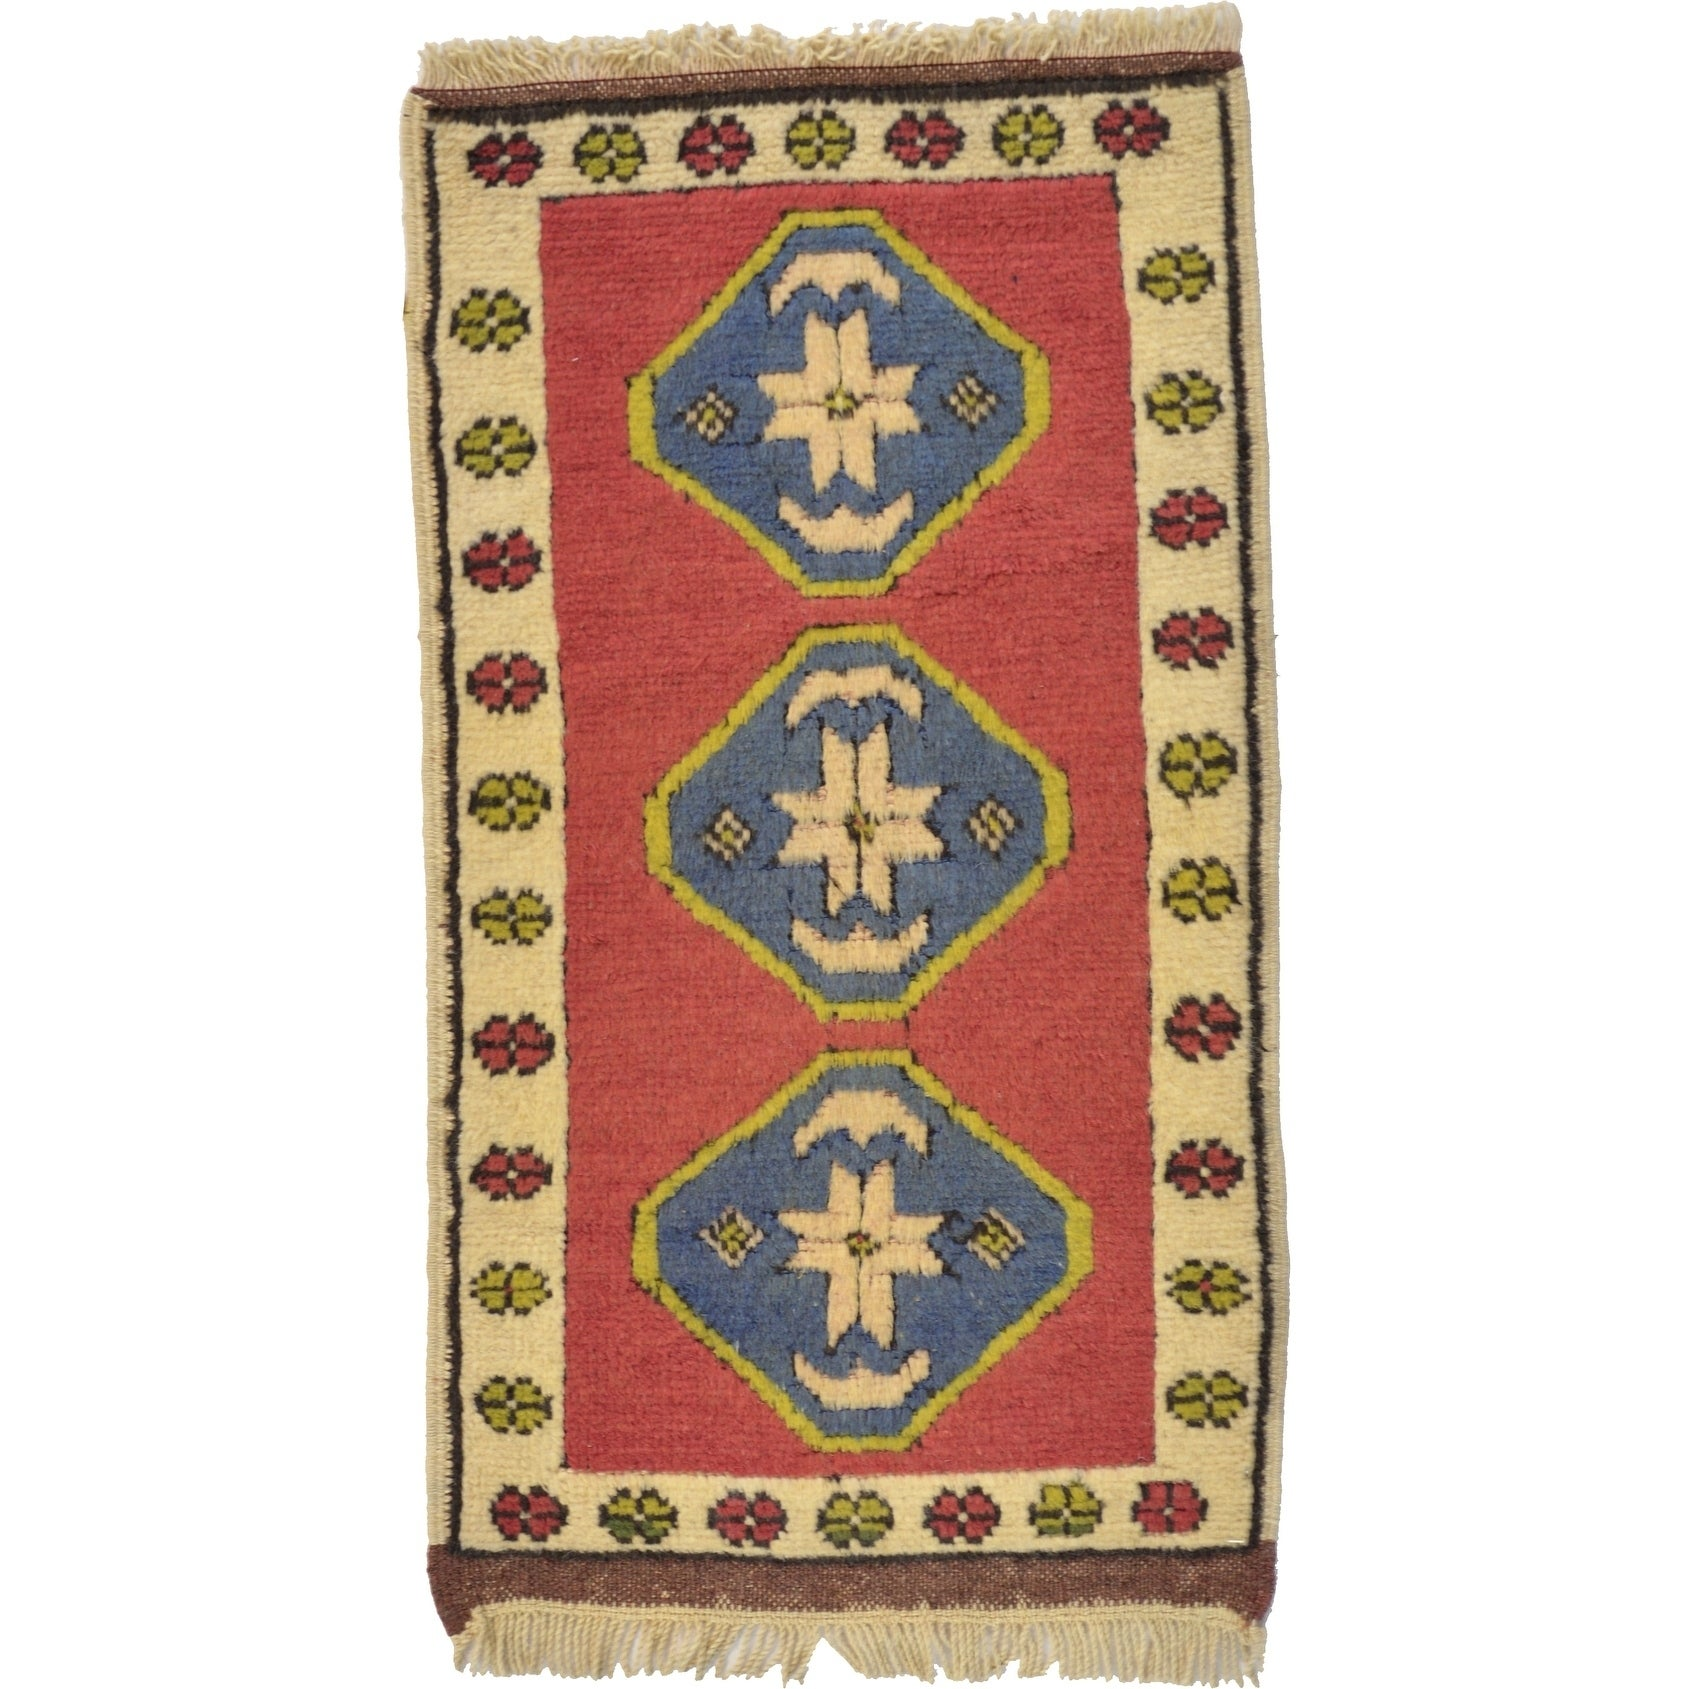 Hand Knotted Kars Wool Area Rug - 1' 9 x 3' 2 (Red - 1' 9 x 3' 2)